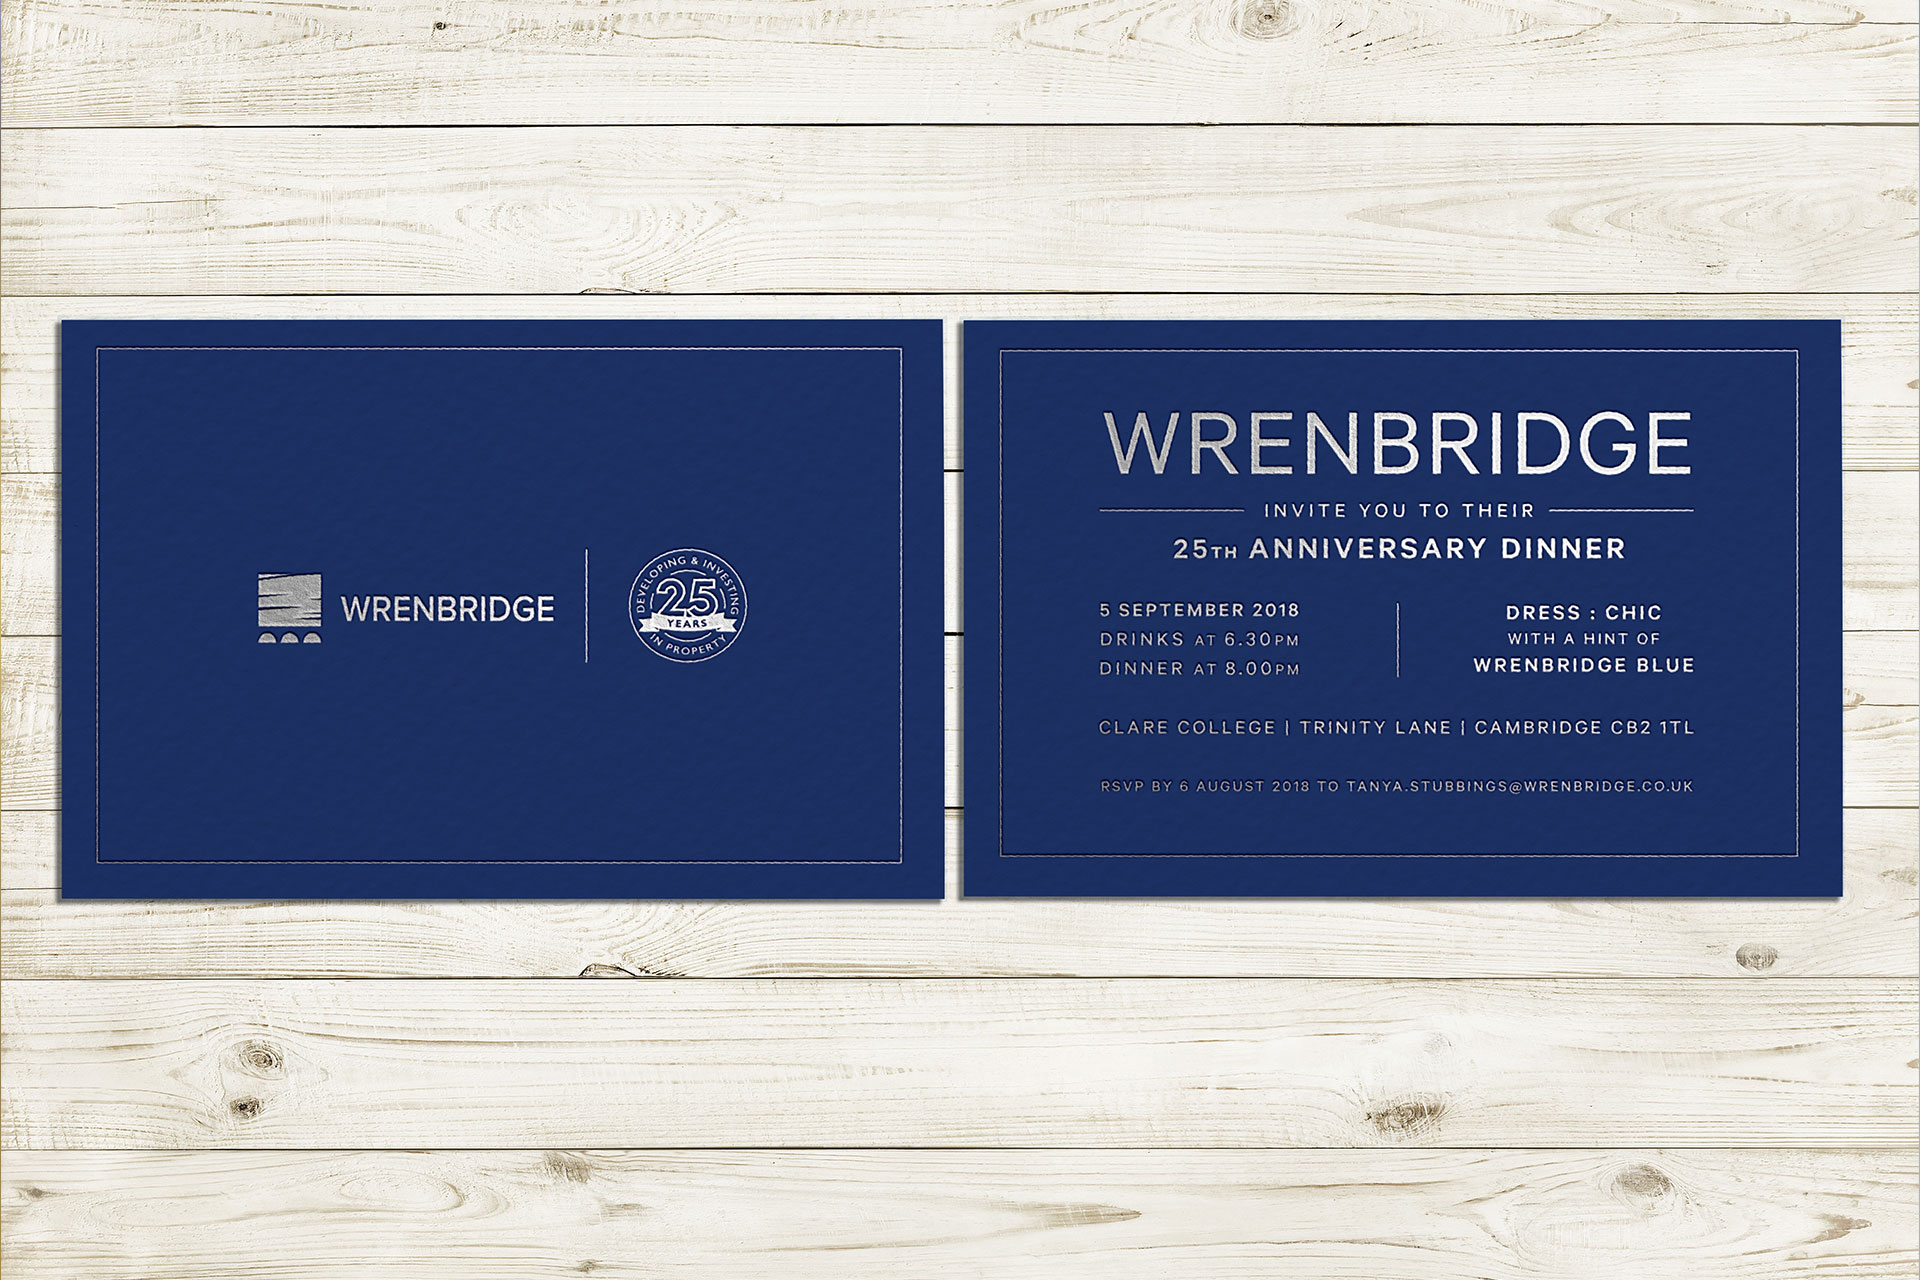 Wrenbridge identity creative